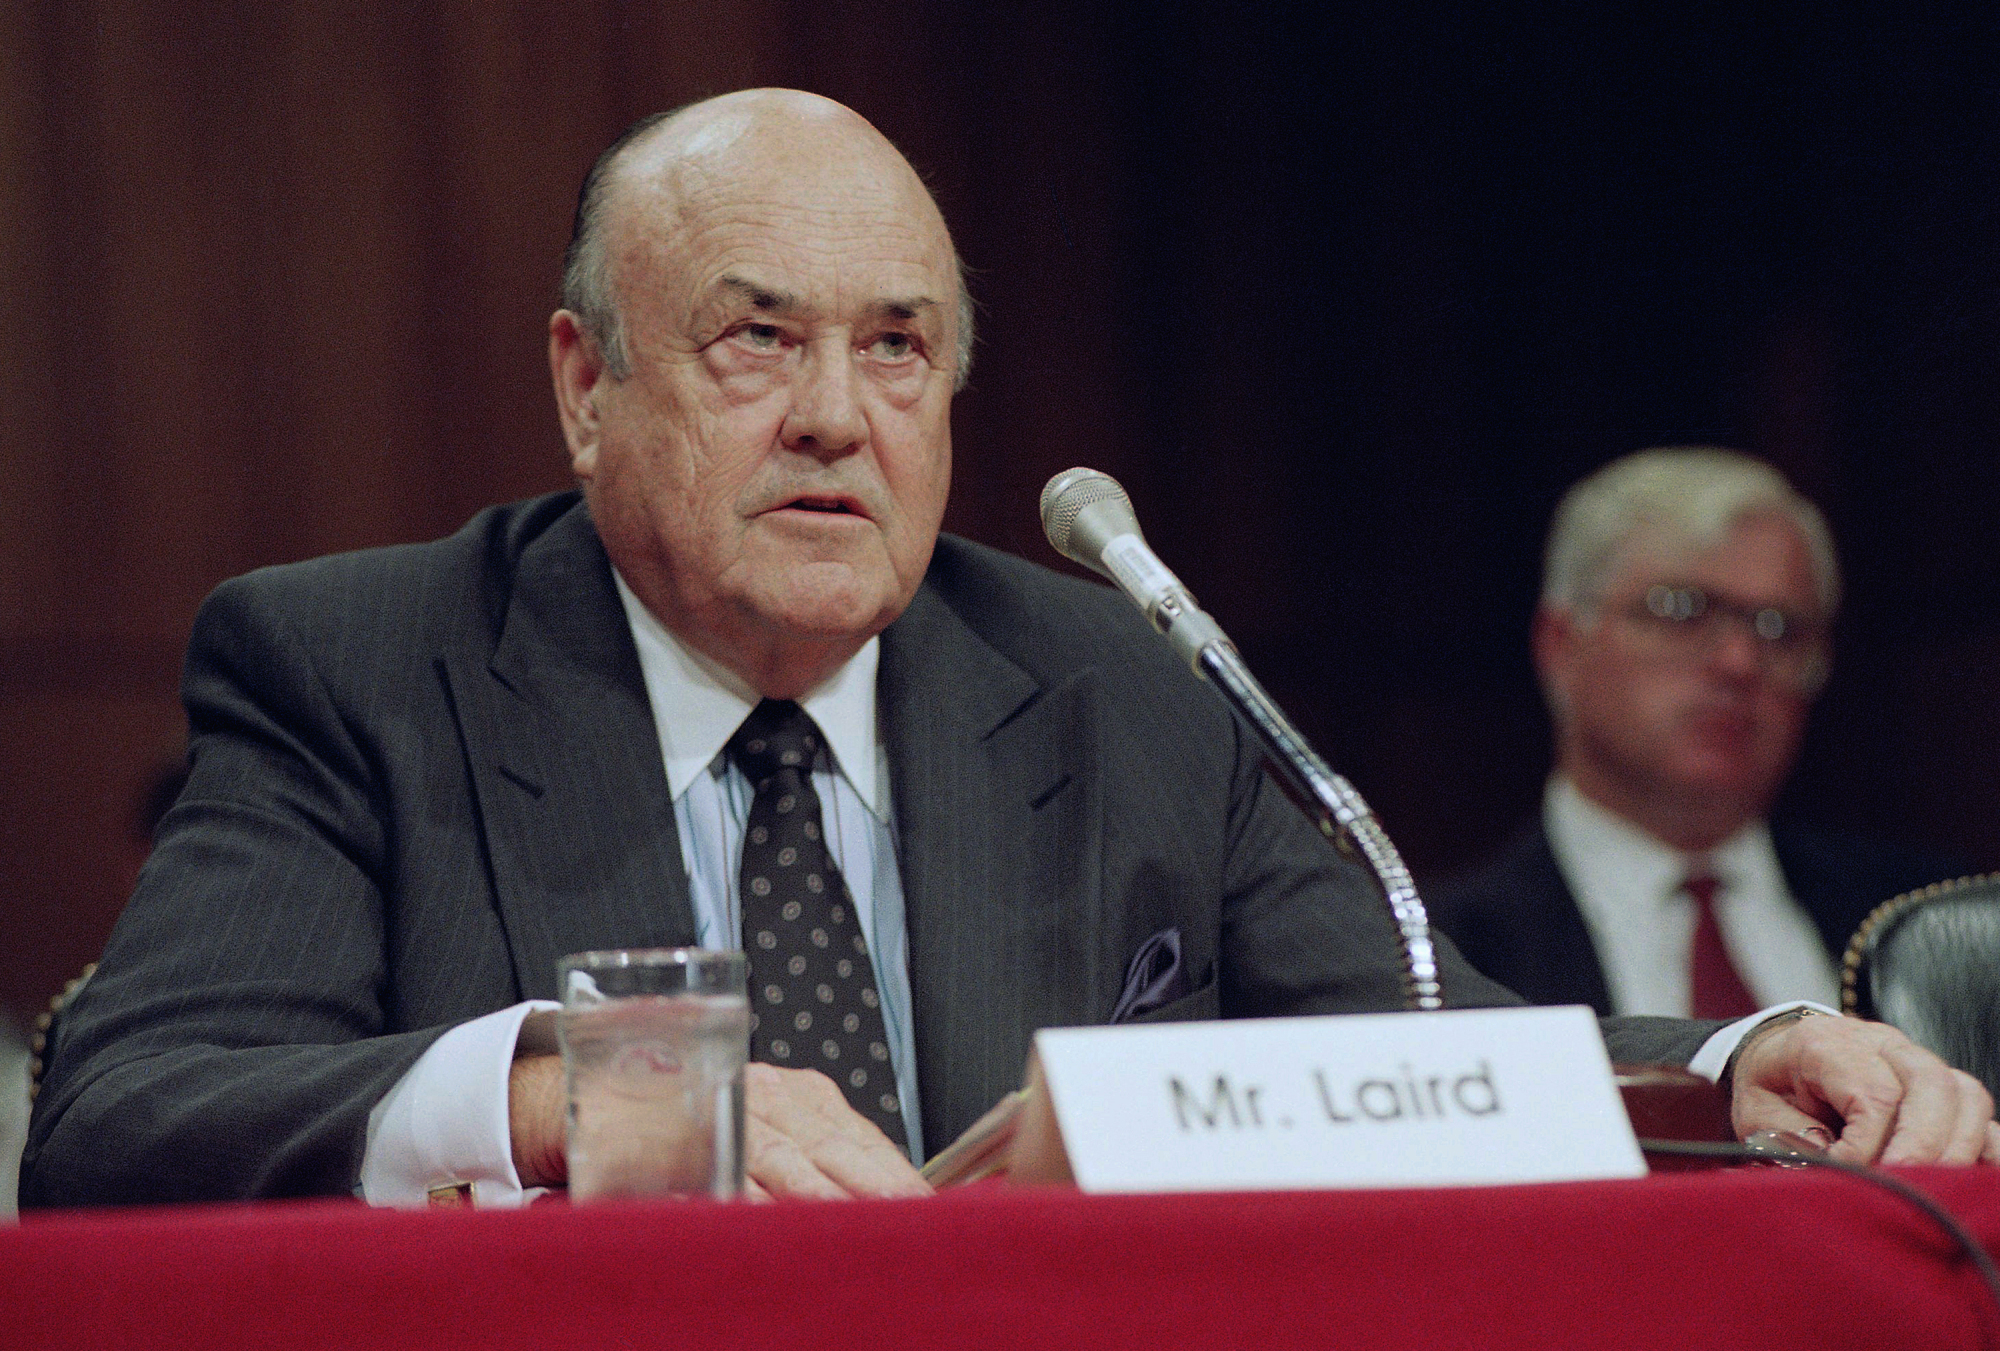 In this 1992 file photo, former Defense Secretary Melvin R. Laird testifies on Capitol Hill in Washington. Laird, defense secretary under Richard Nixon who helped engineer withdrawal of U.S. troops from Vietnam, has died. | AP